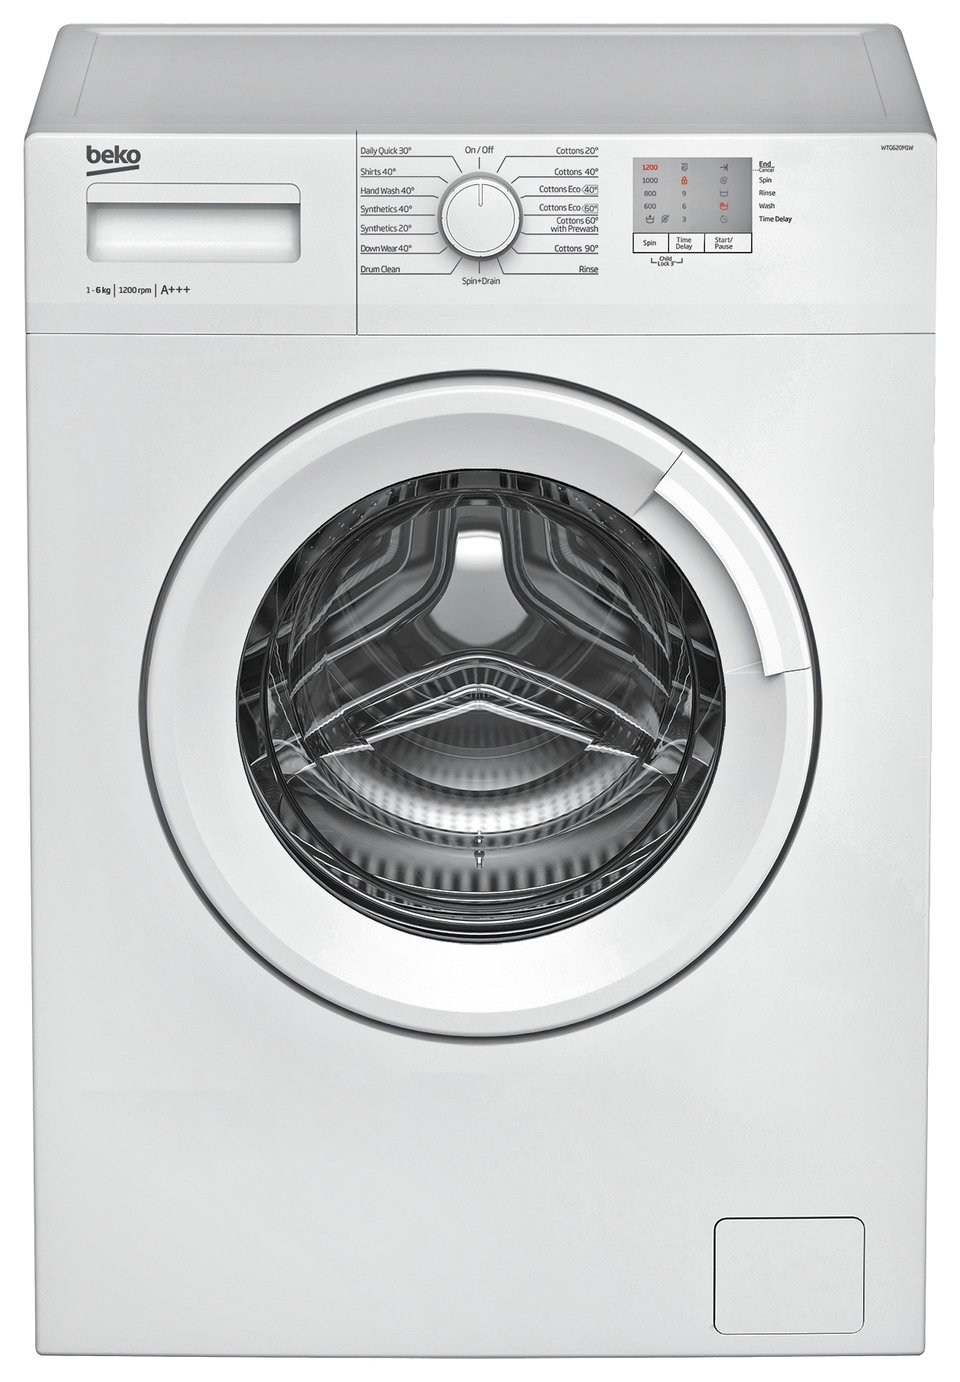 beko 6kg washing machine instructions